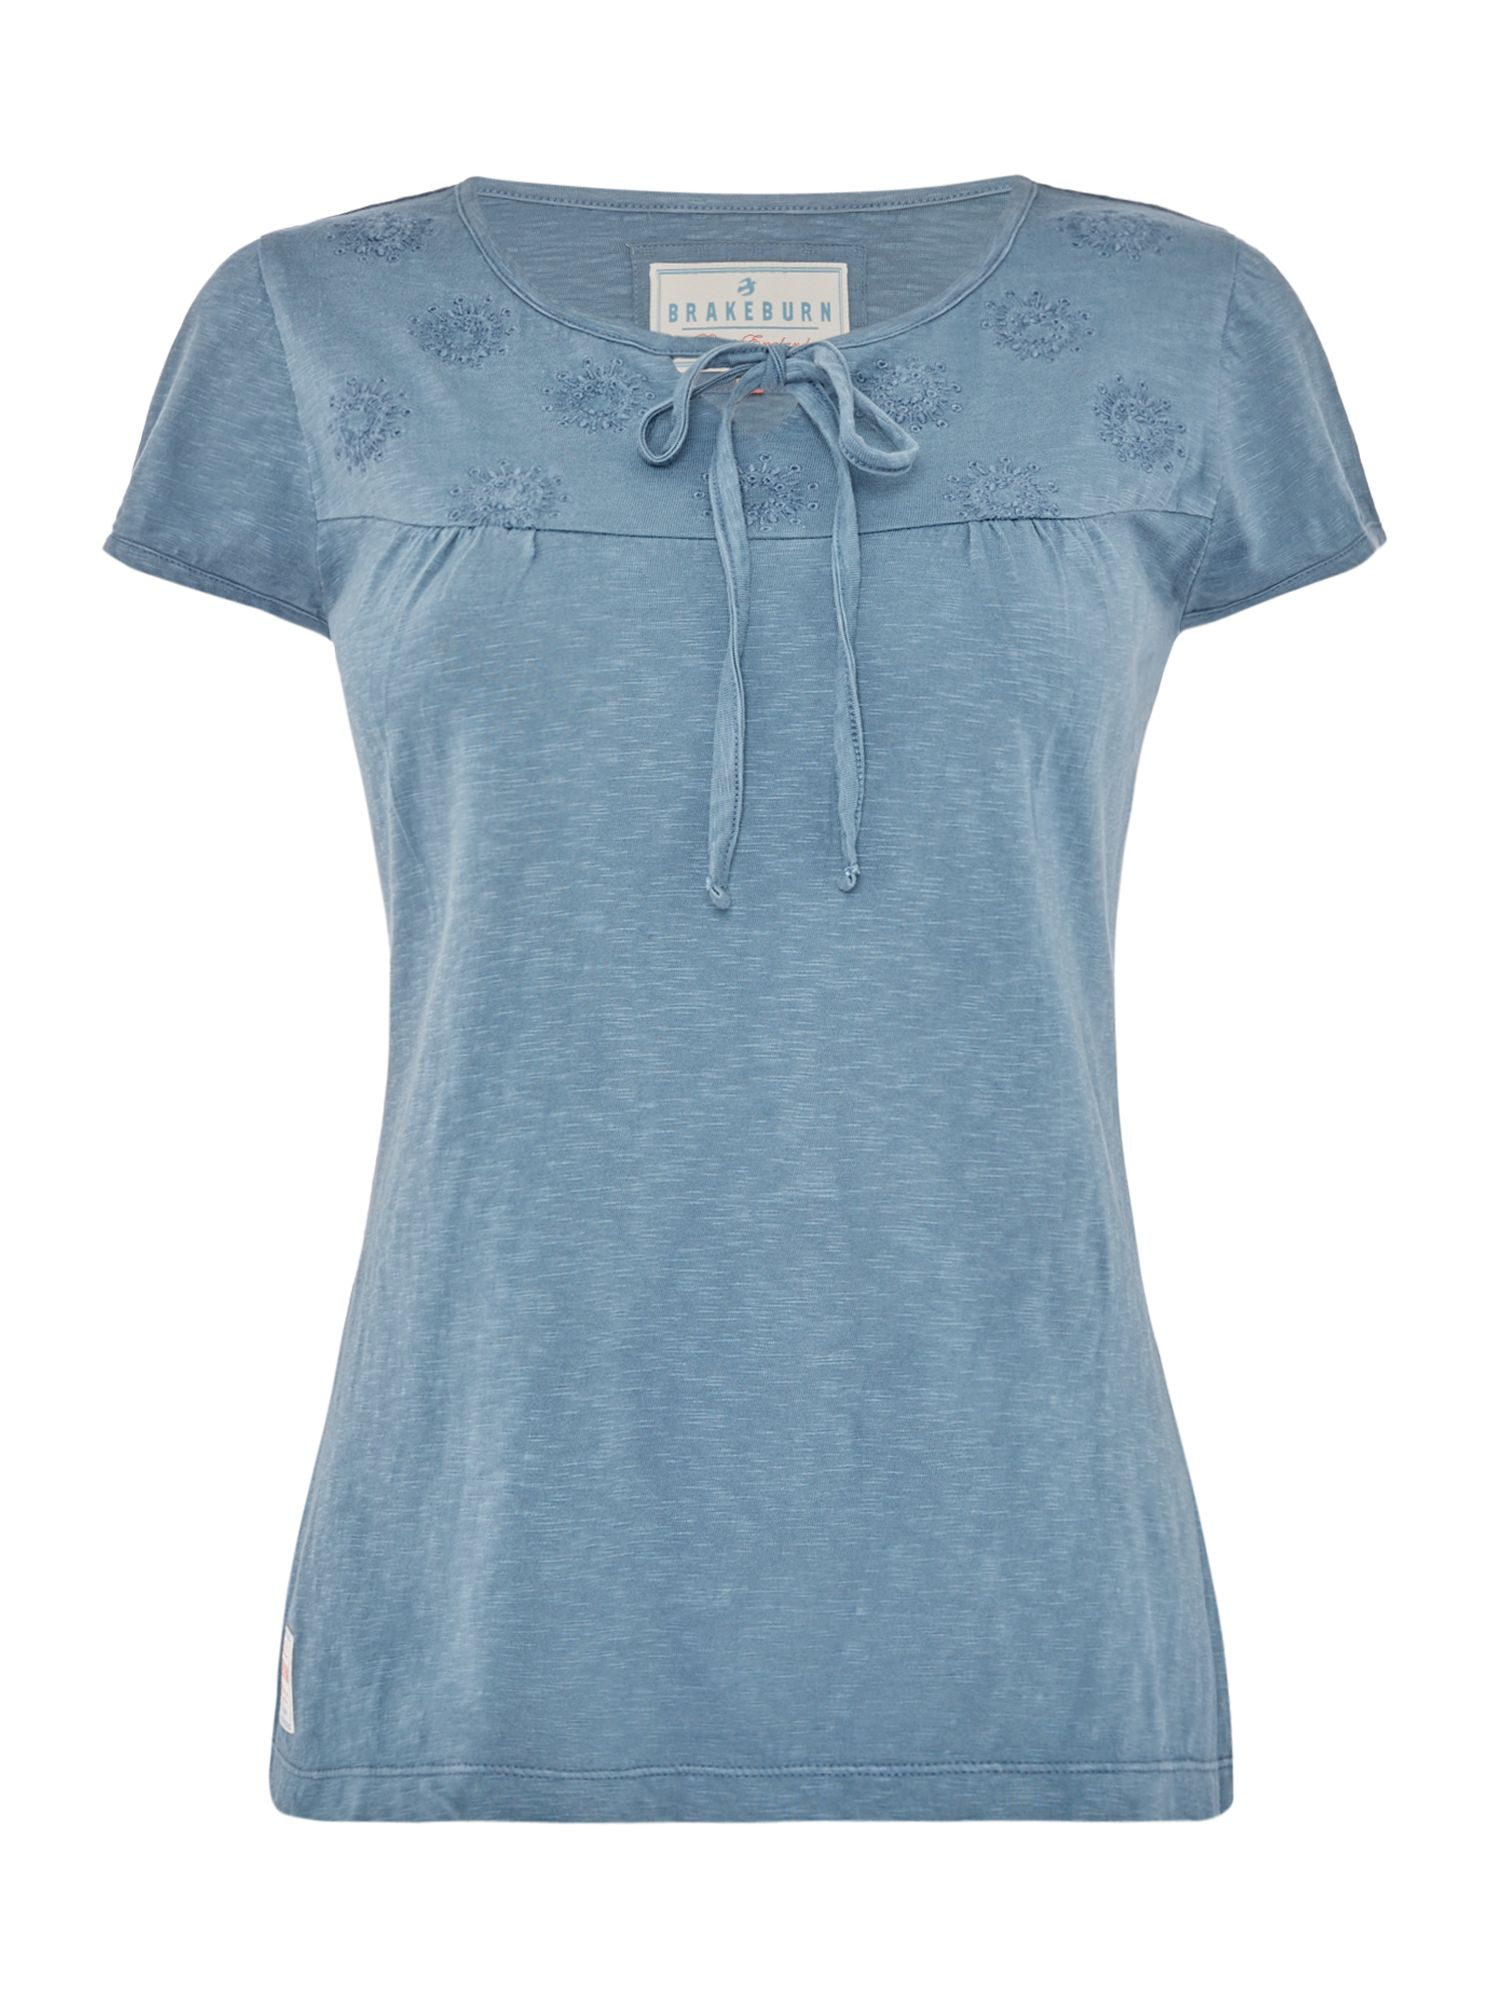 Brakeburn Lace up Short sleeve Tee, Blue